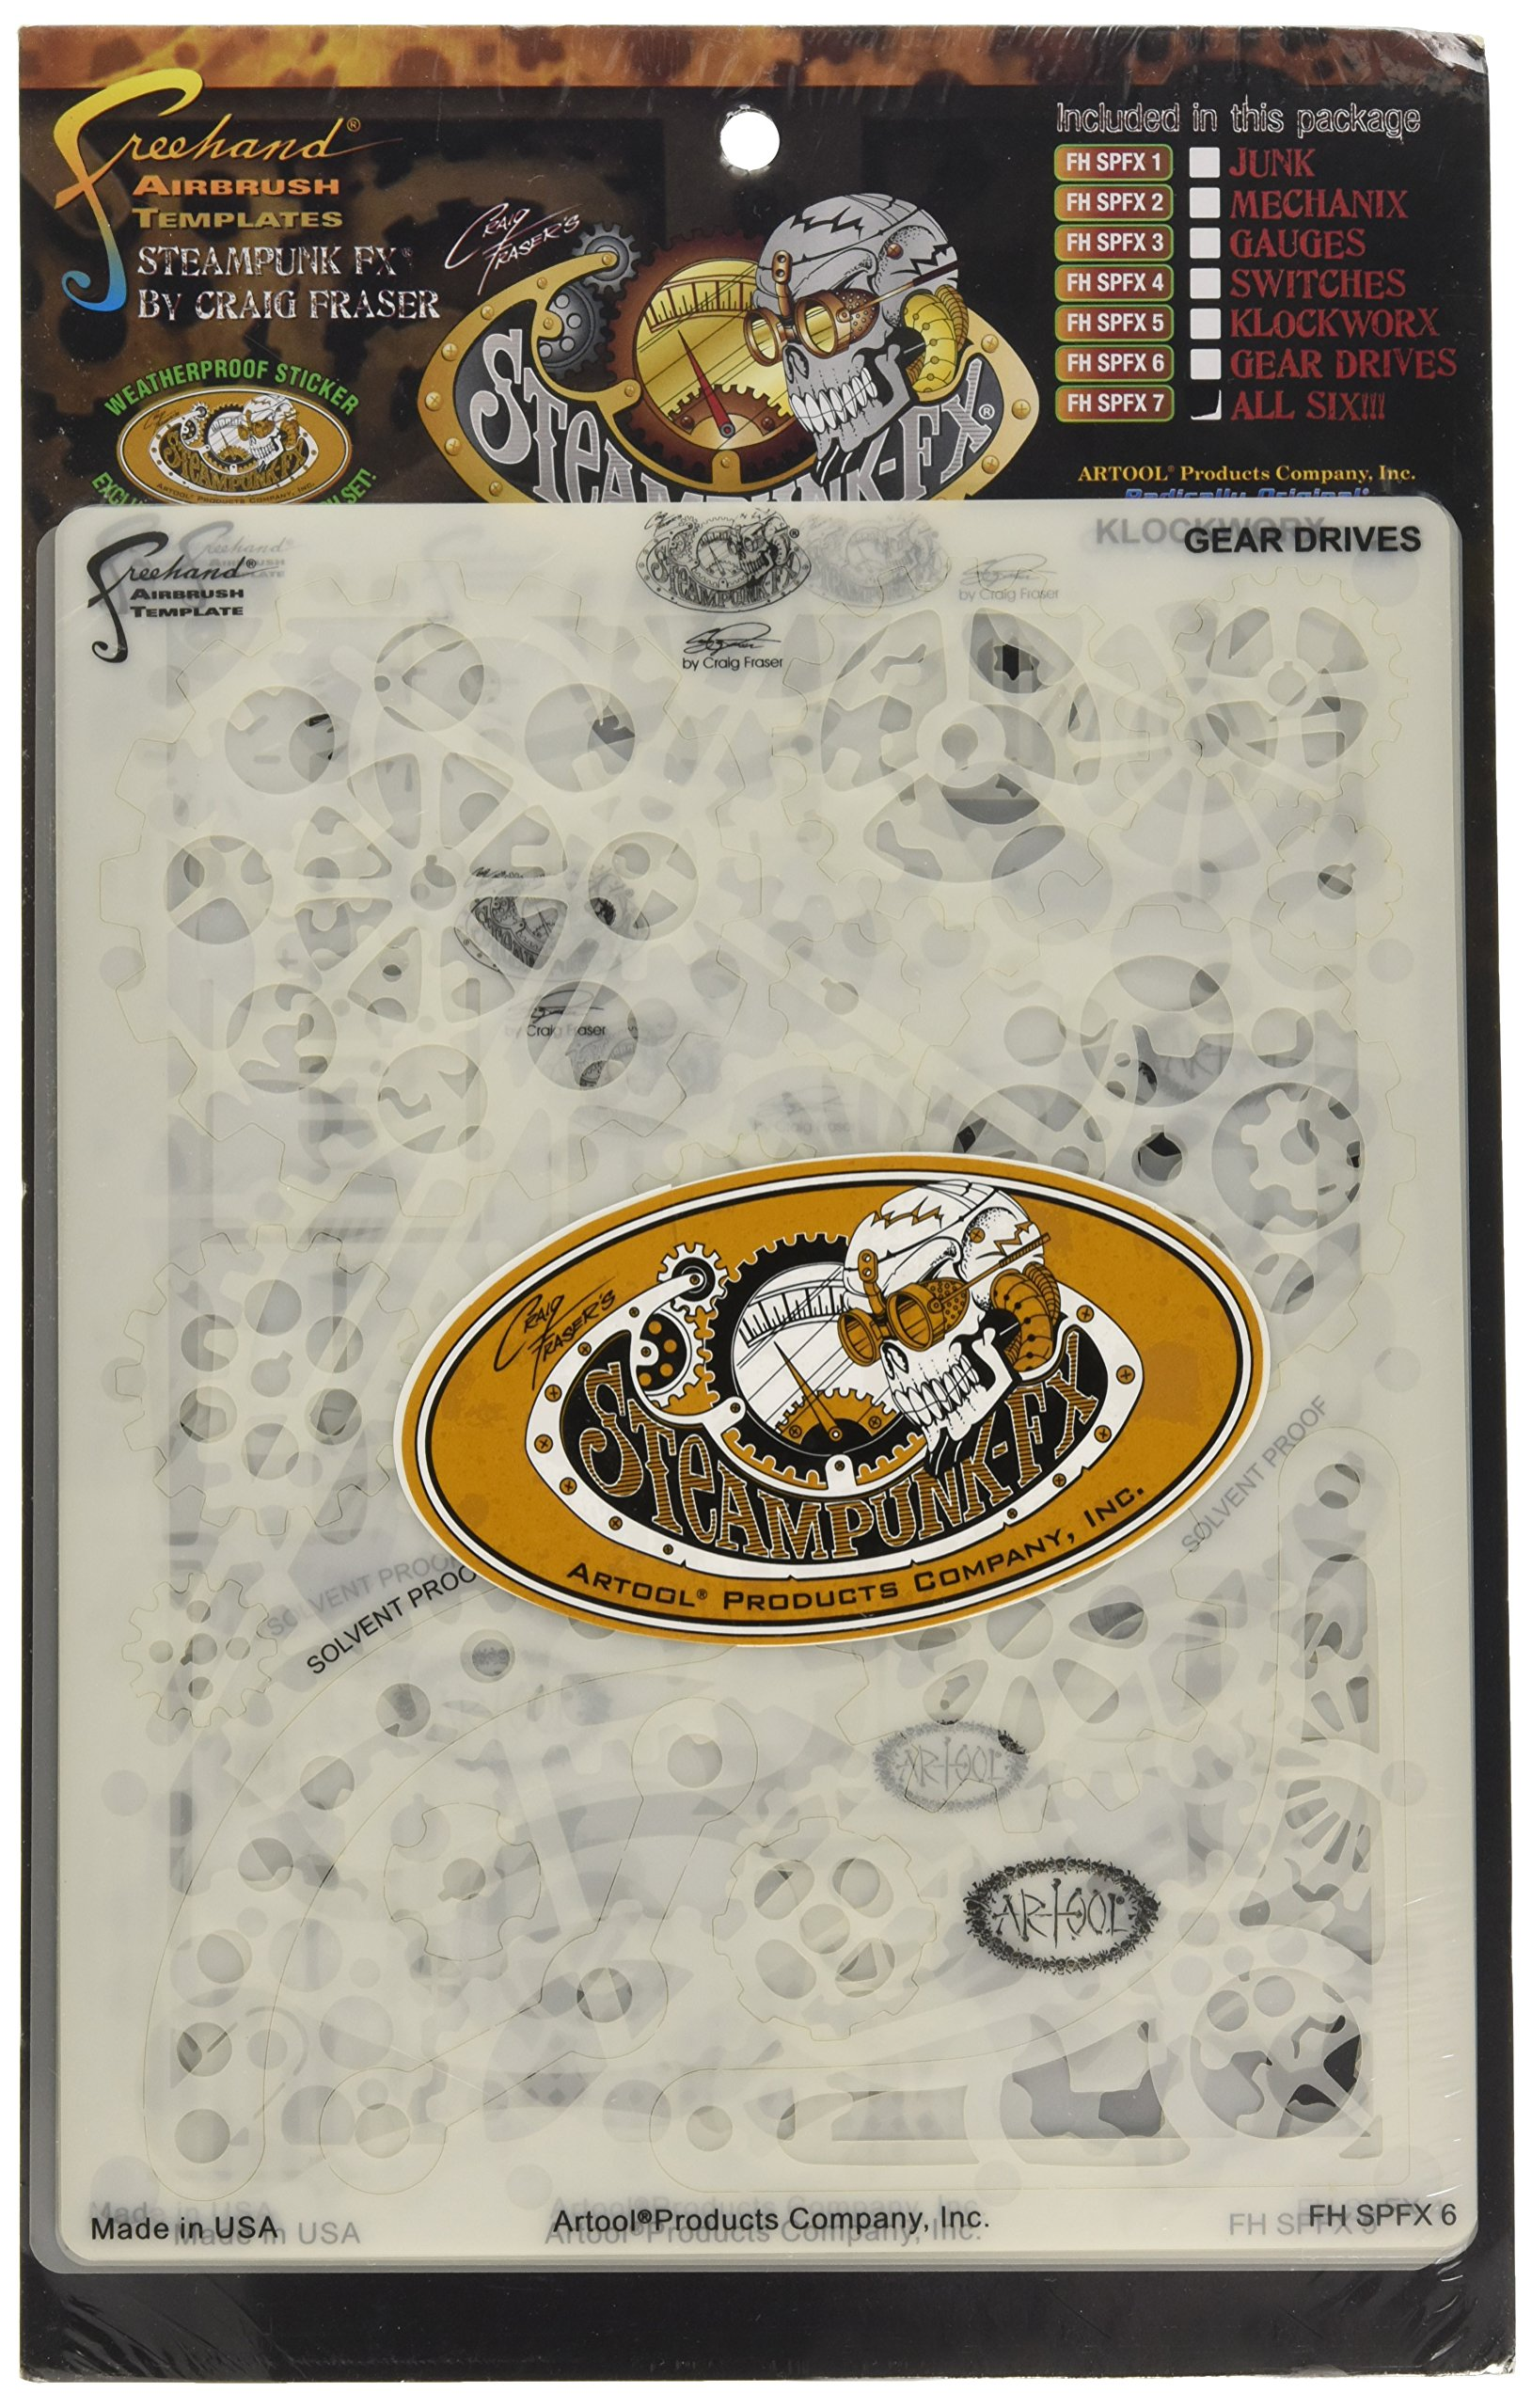 Artool Freehand Airbrush Templates, Steam Punk Fx Template - Complete Set Of 6 by Iwata-Medea